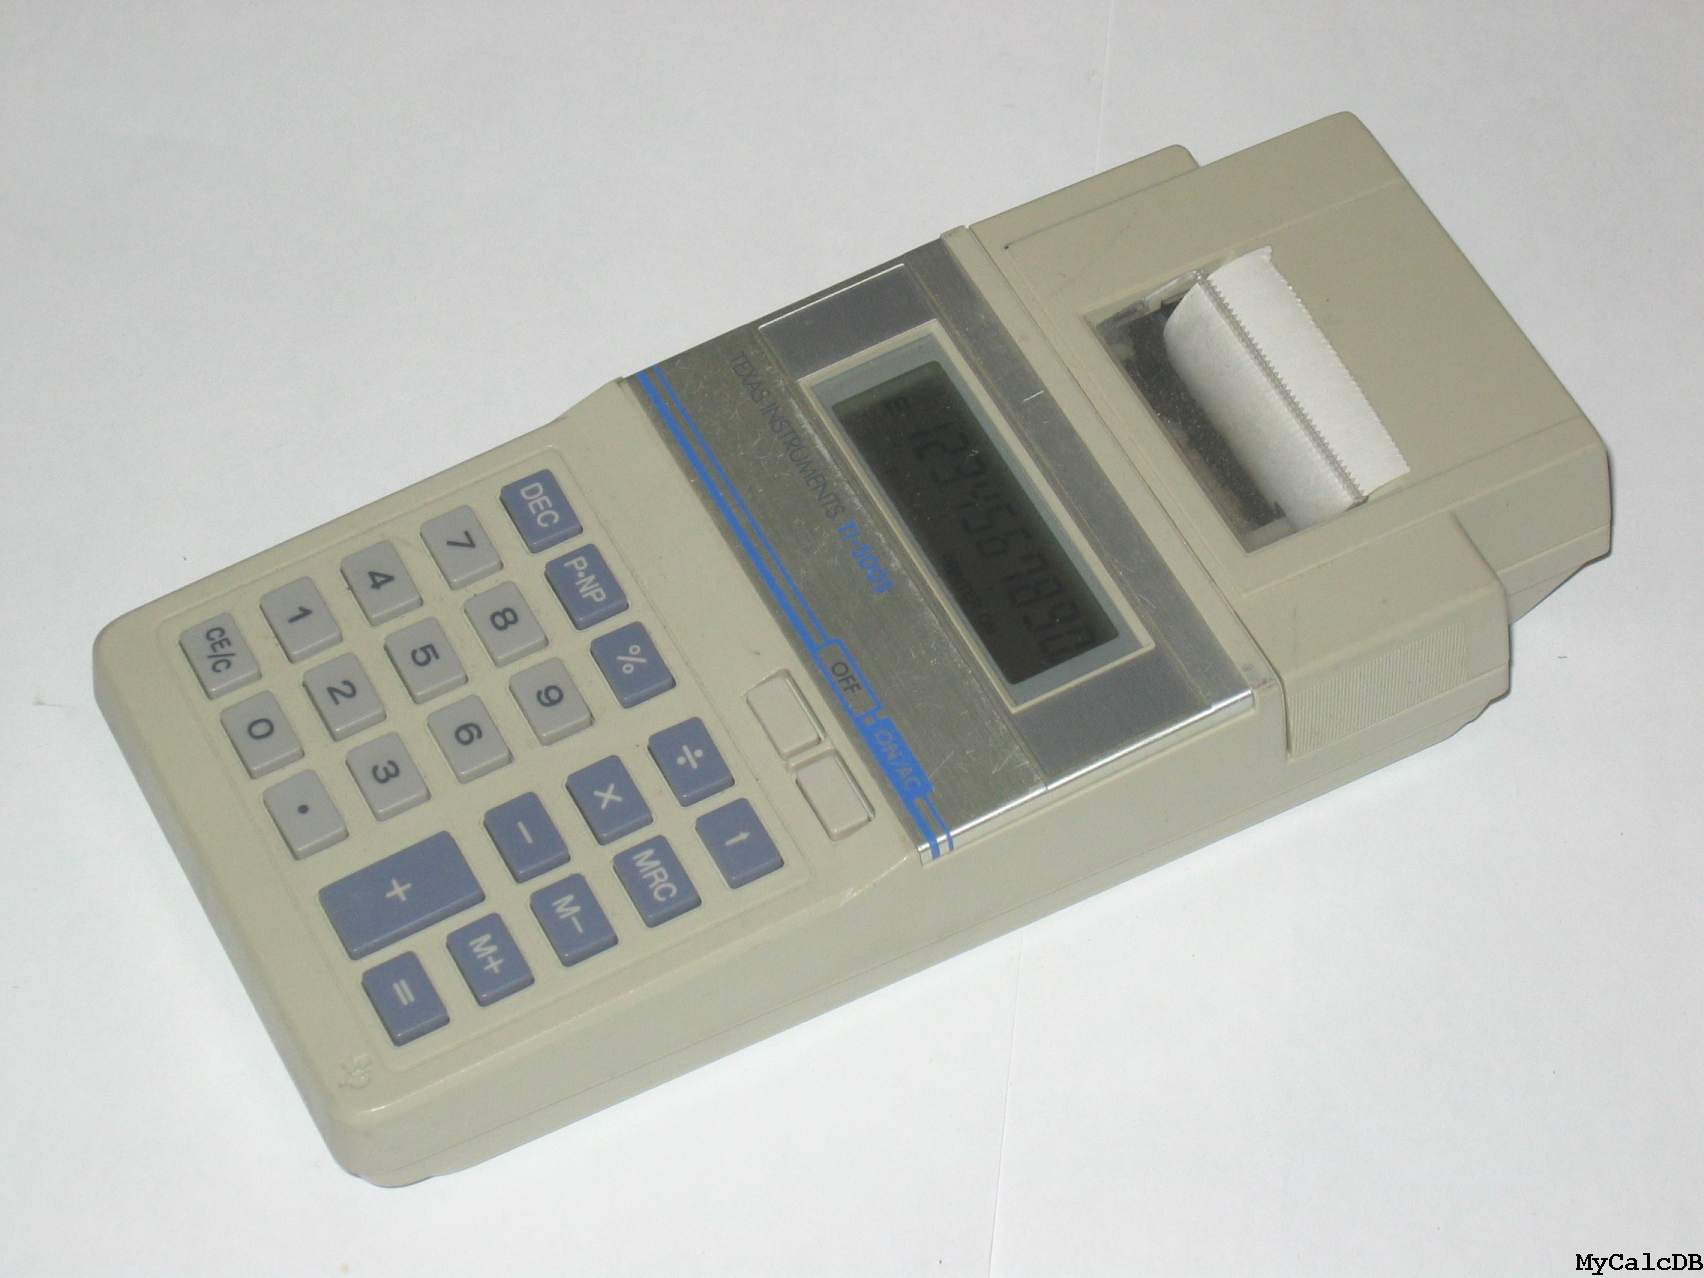 Texas Instruments TI-5005